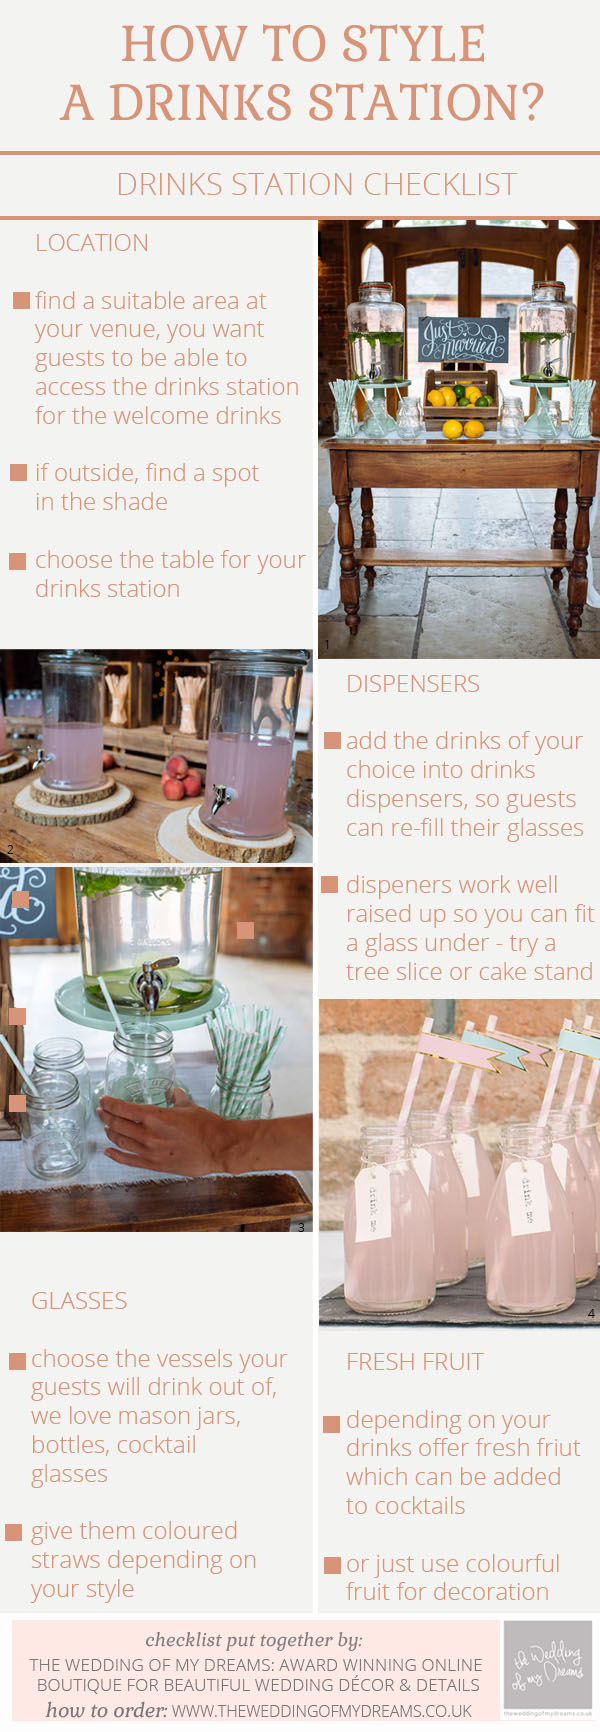 what do I need for a drinks station checklist - how to style a drinks station